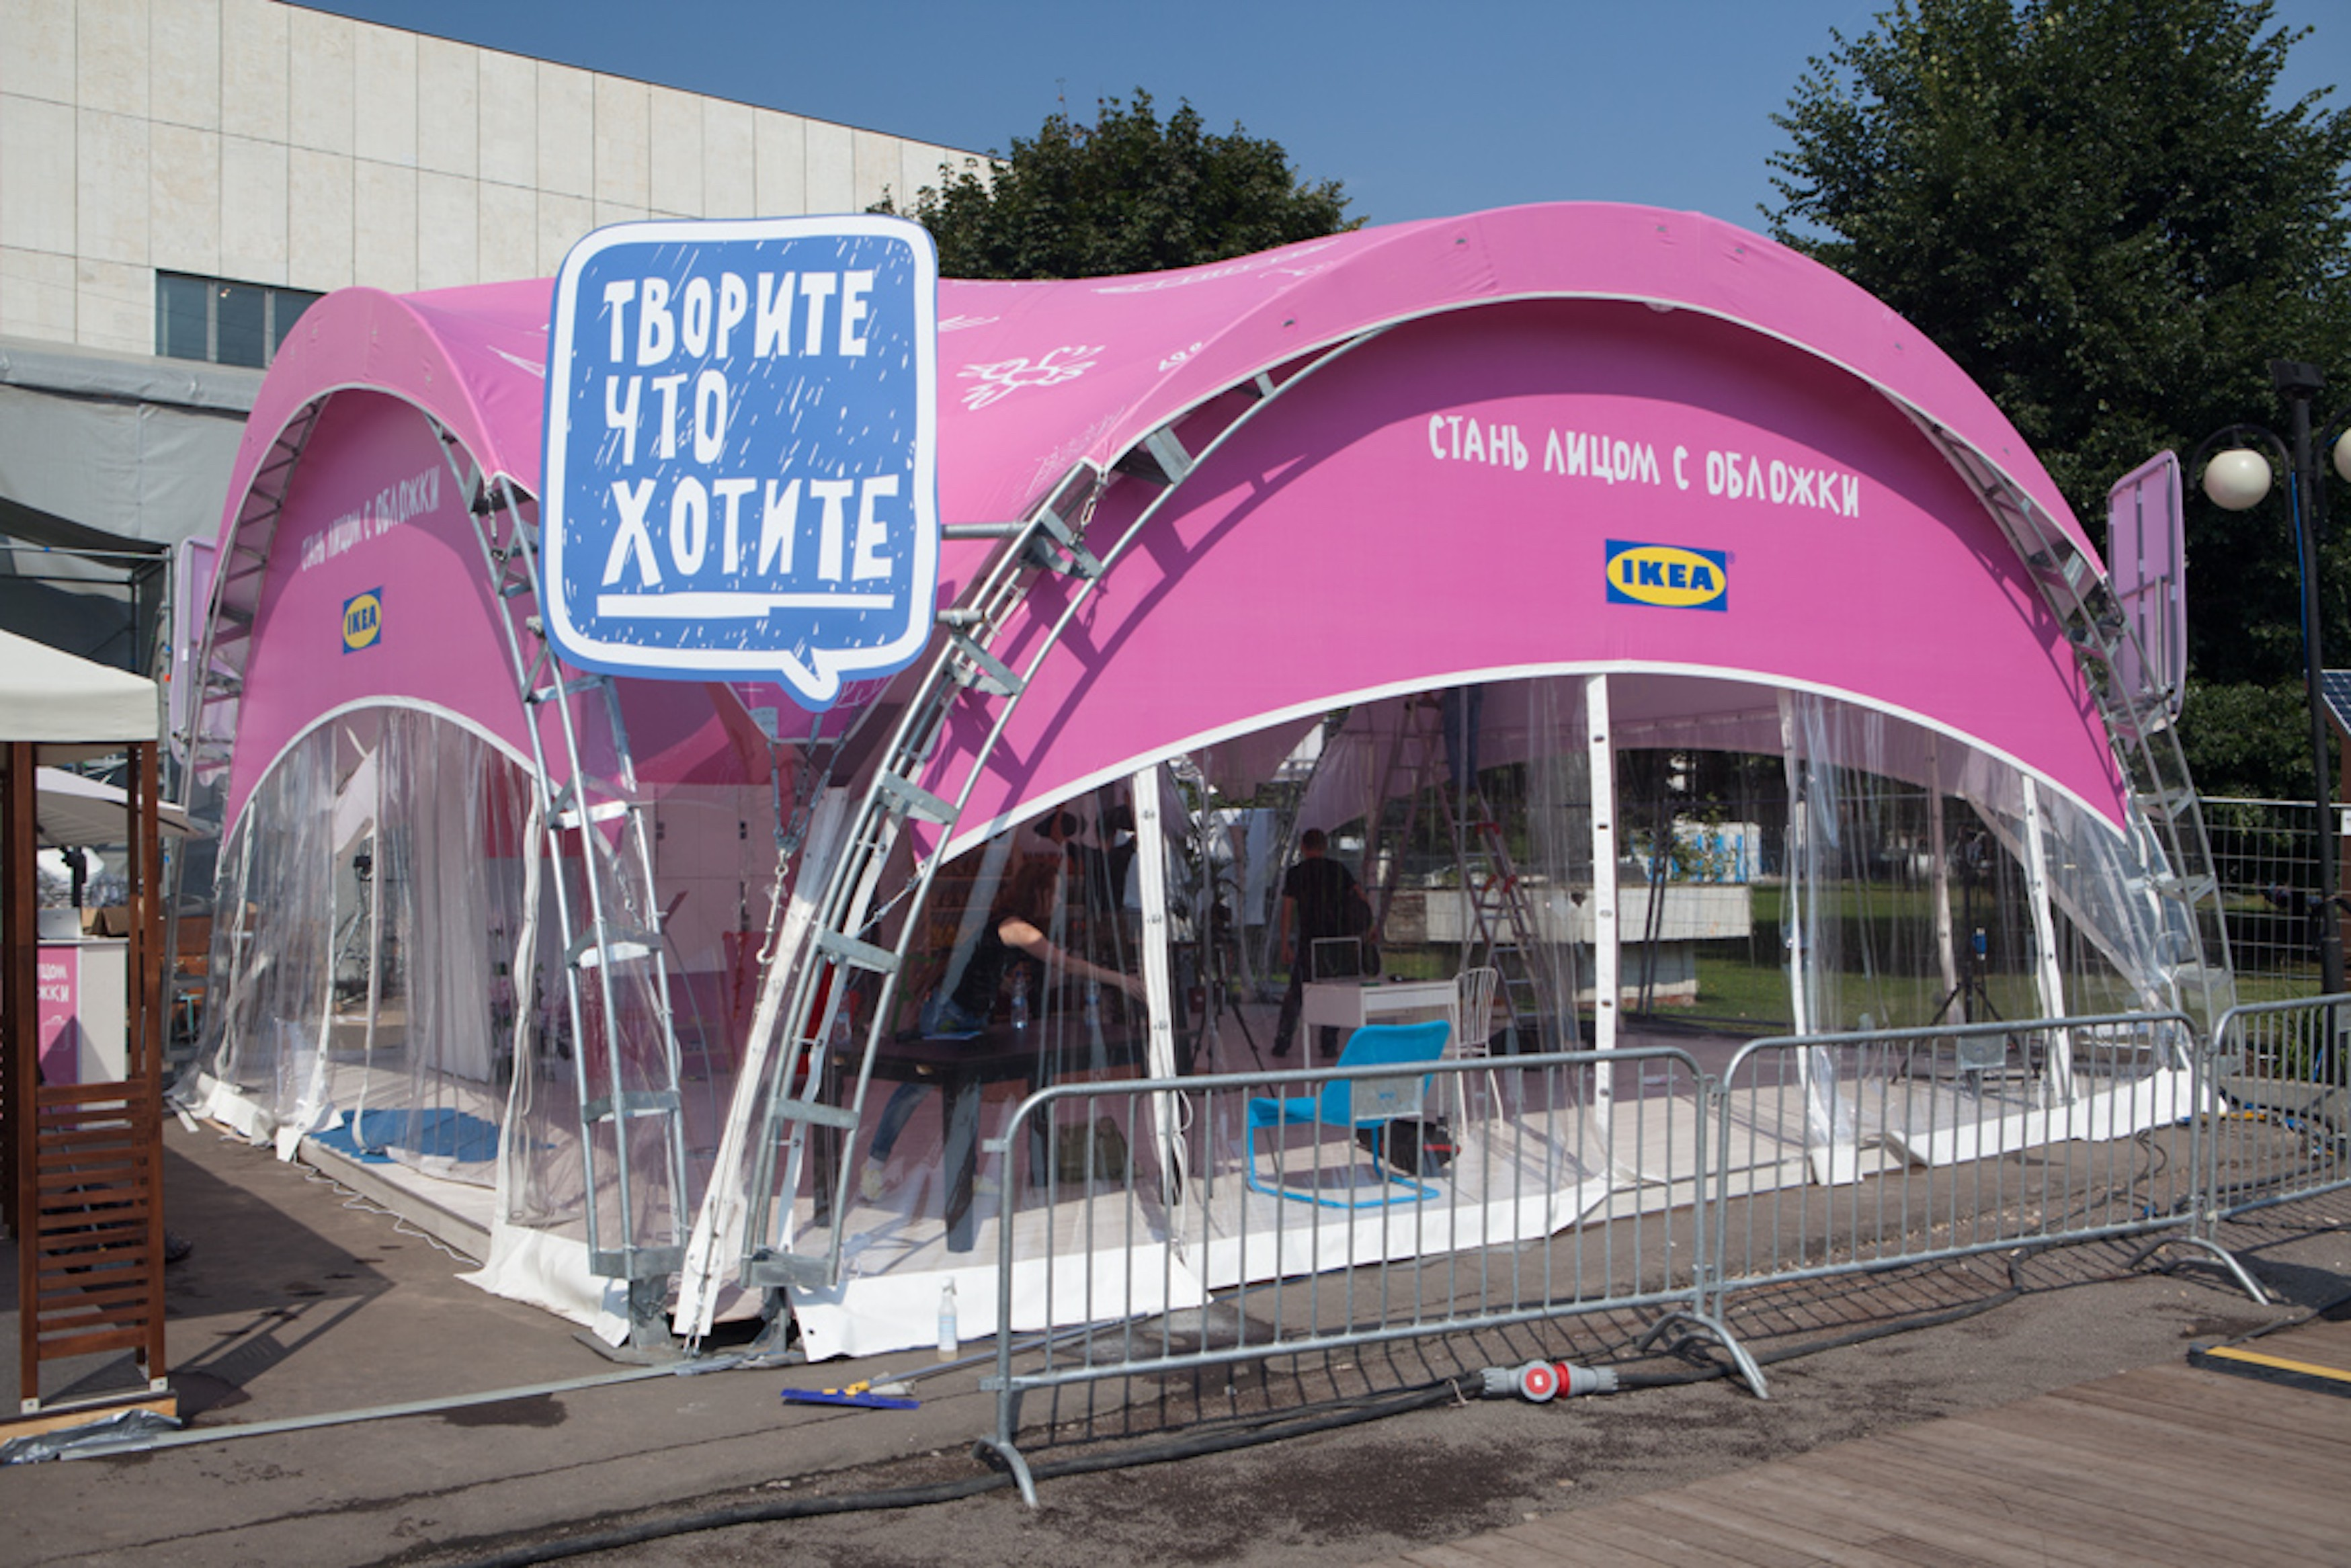 https://royaltent.me/houses_images/10h10_ikea_pink_200104052516.jpg